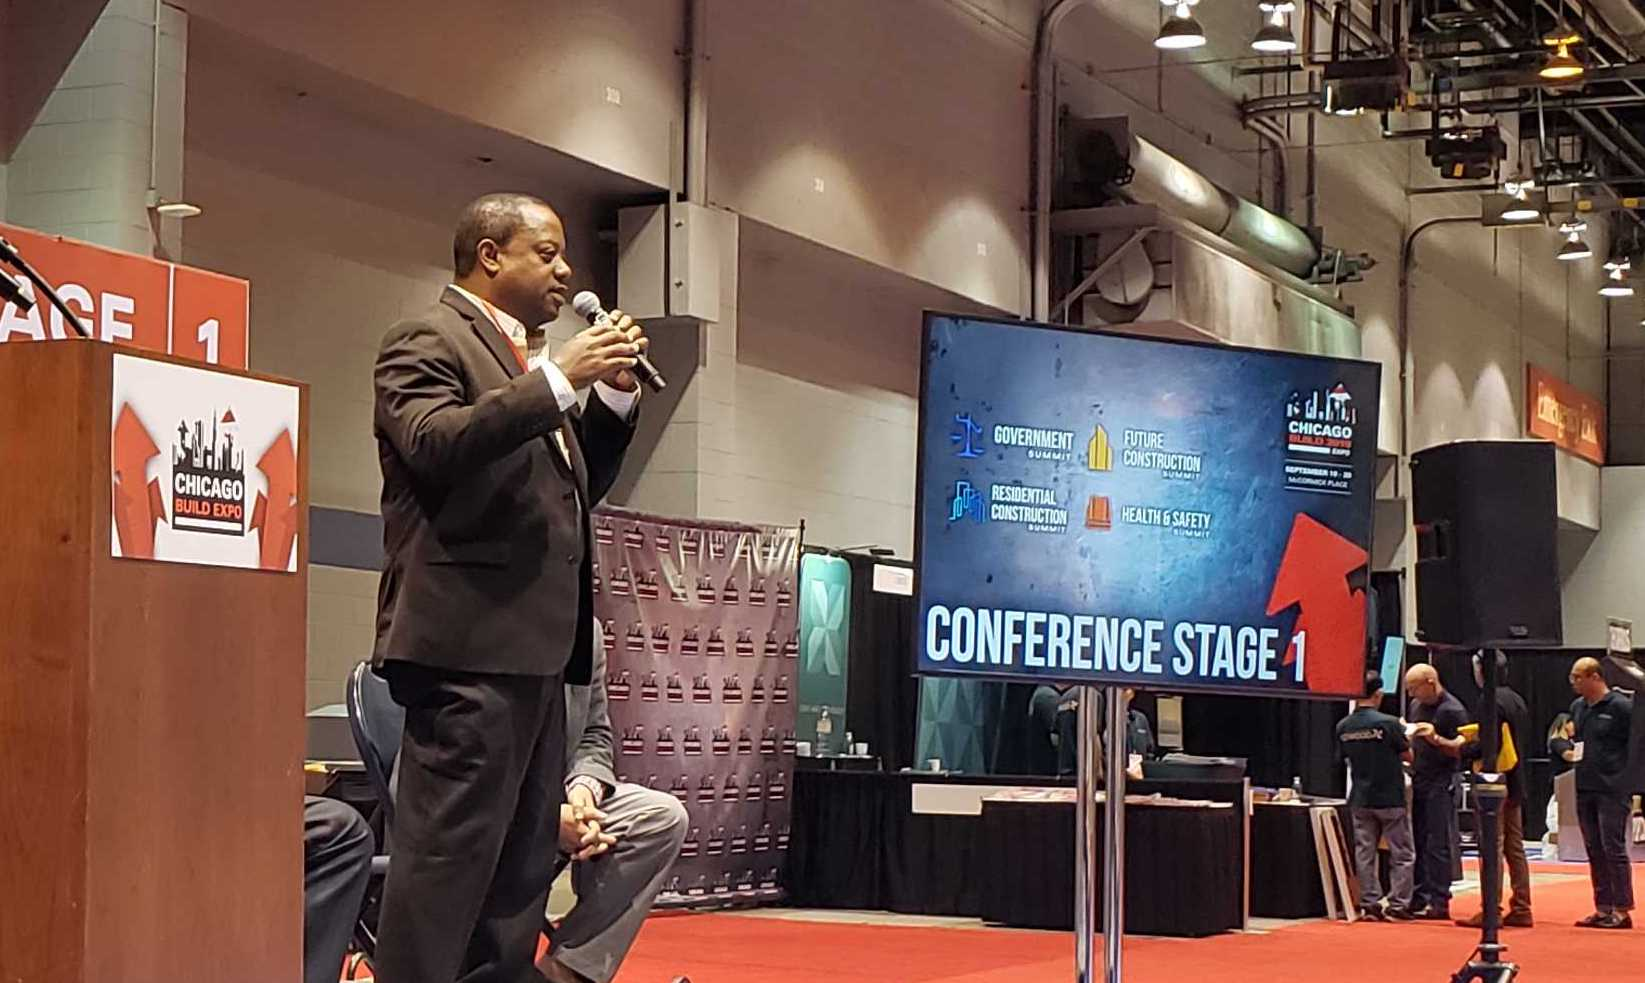 Roderick T. Sawyer, Alderman for Chicago's 6th Ward, addresses the audience at 2019 Chicago Build Expo